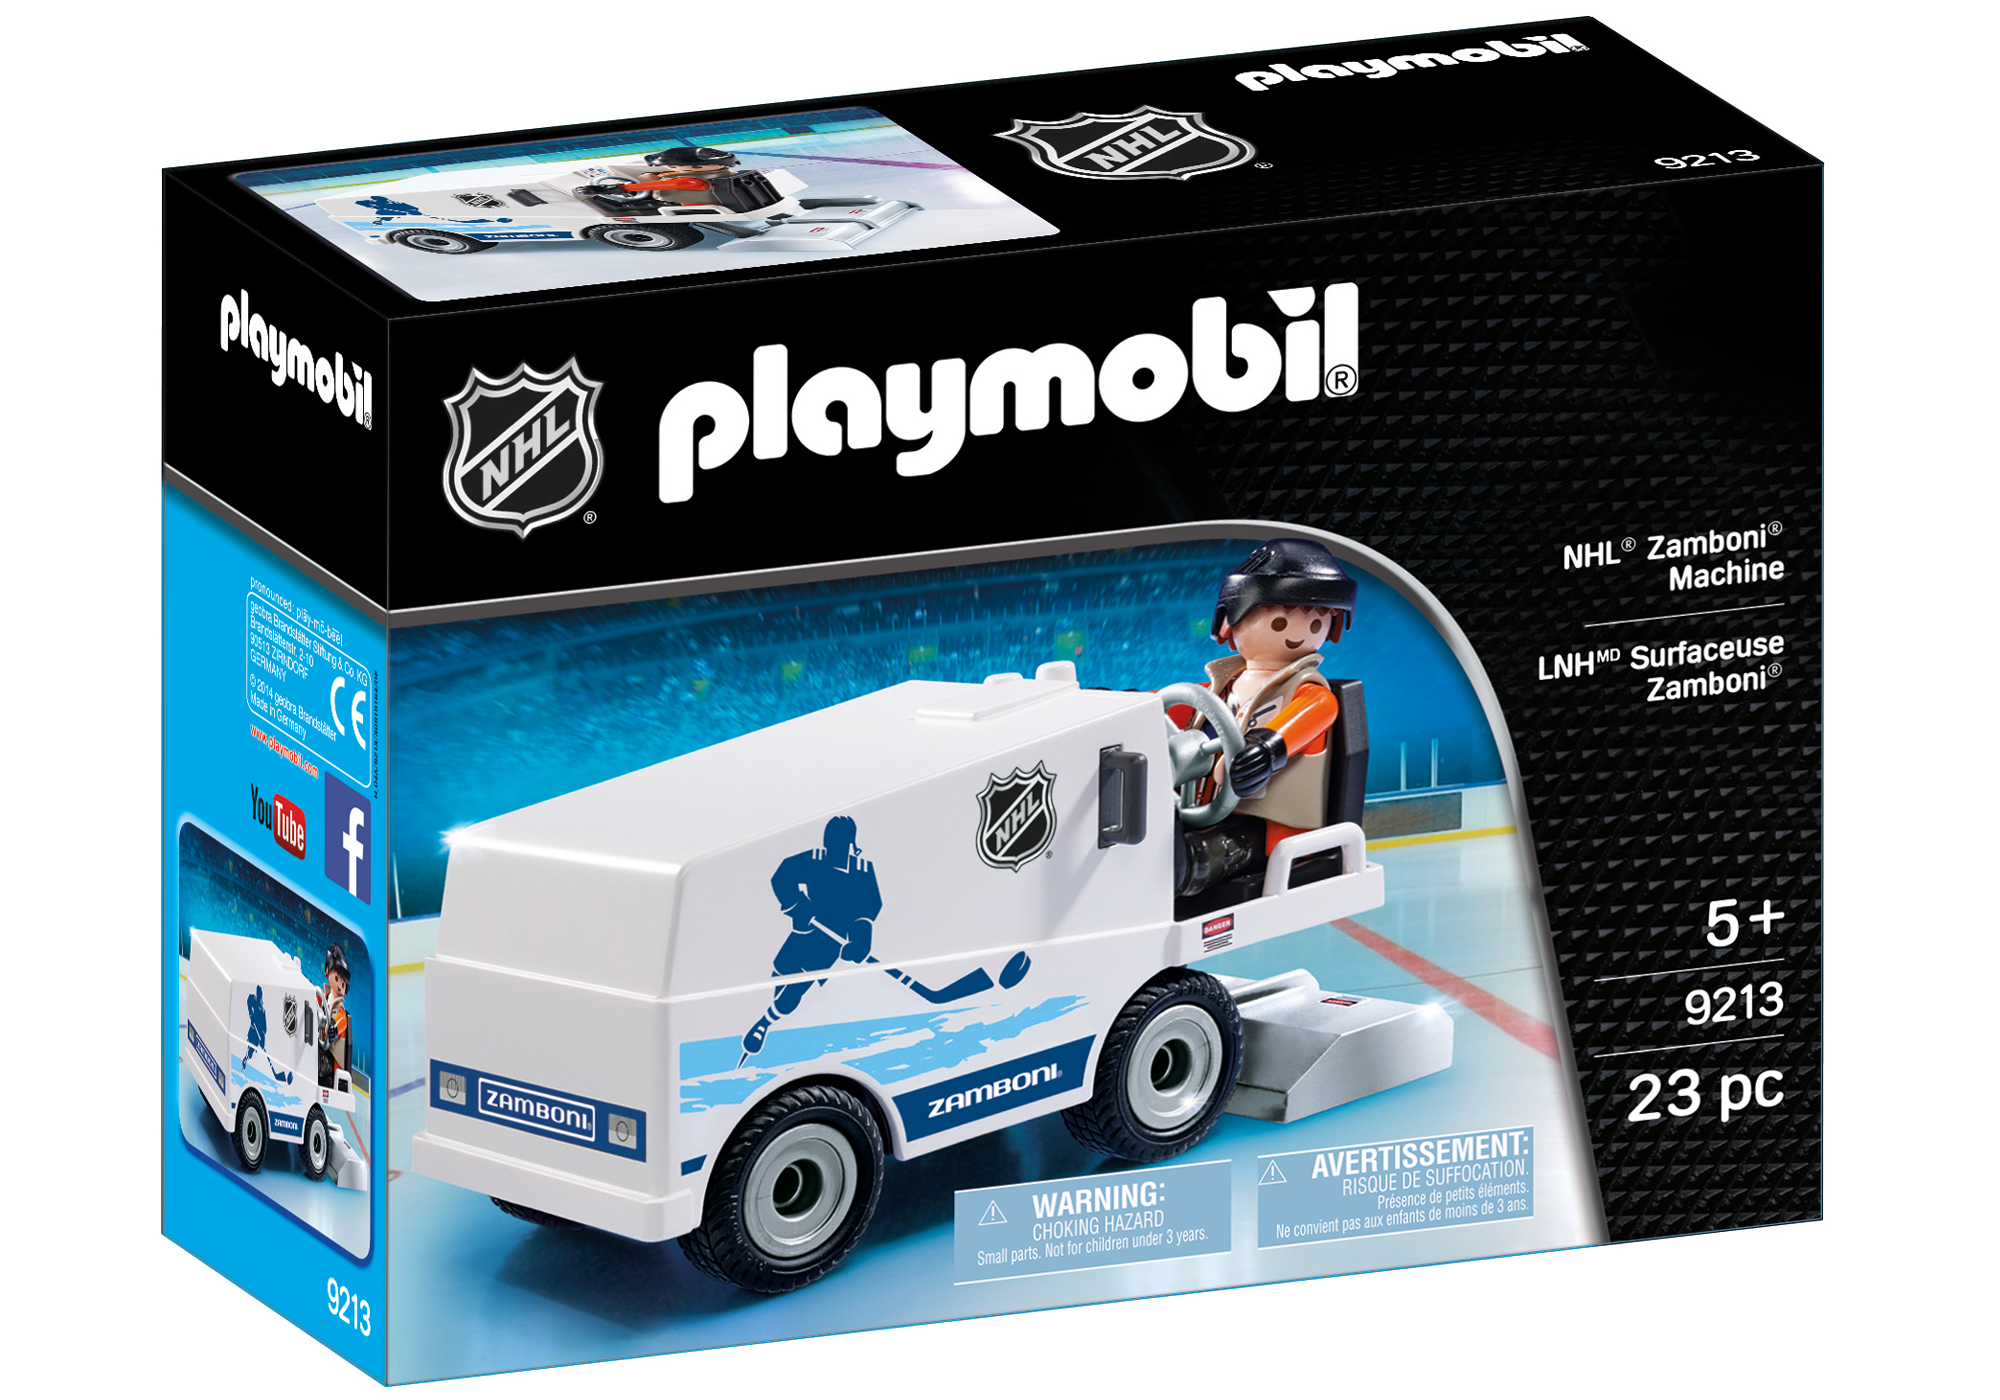 http://media.playmobil.com/i/playmobil/9213_product_box_front/NHL™ Zamboni® Machine